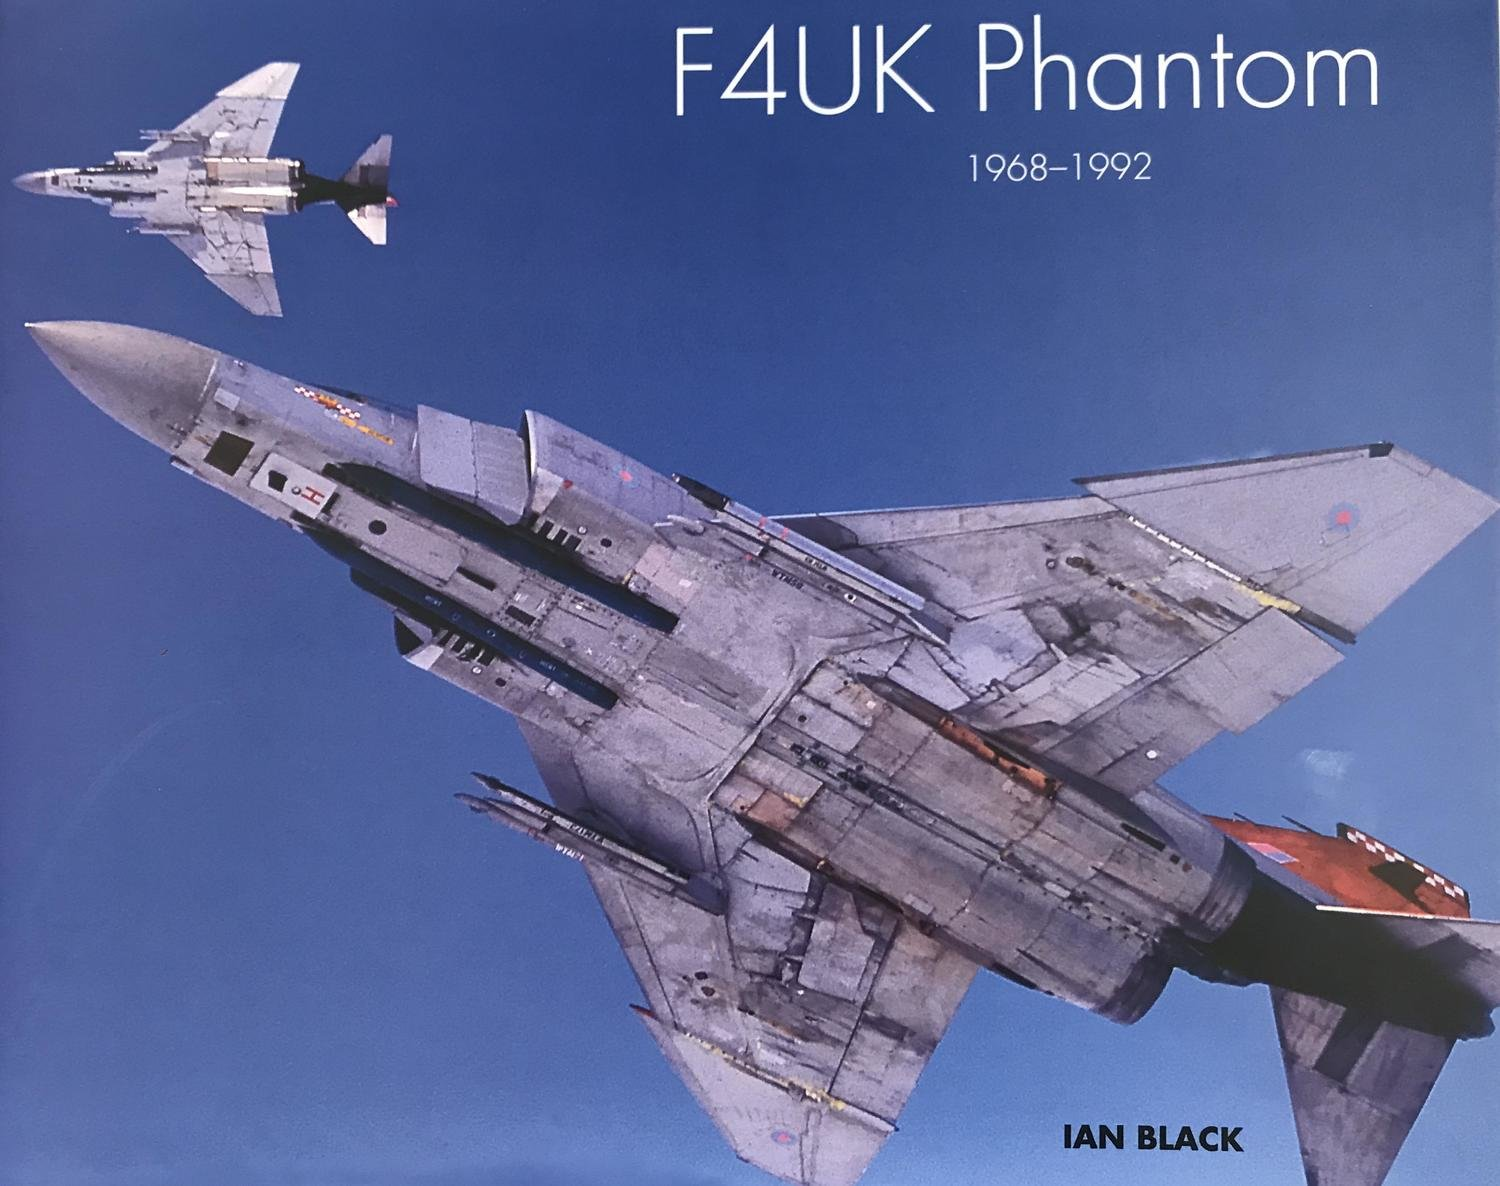 F4UK Phantom 1968-1992, Ian Black